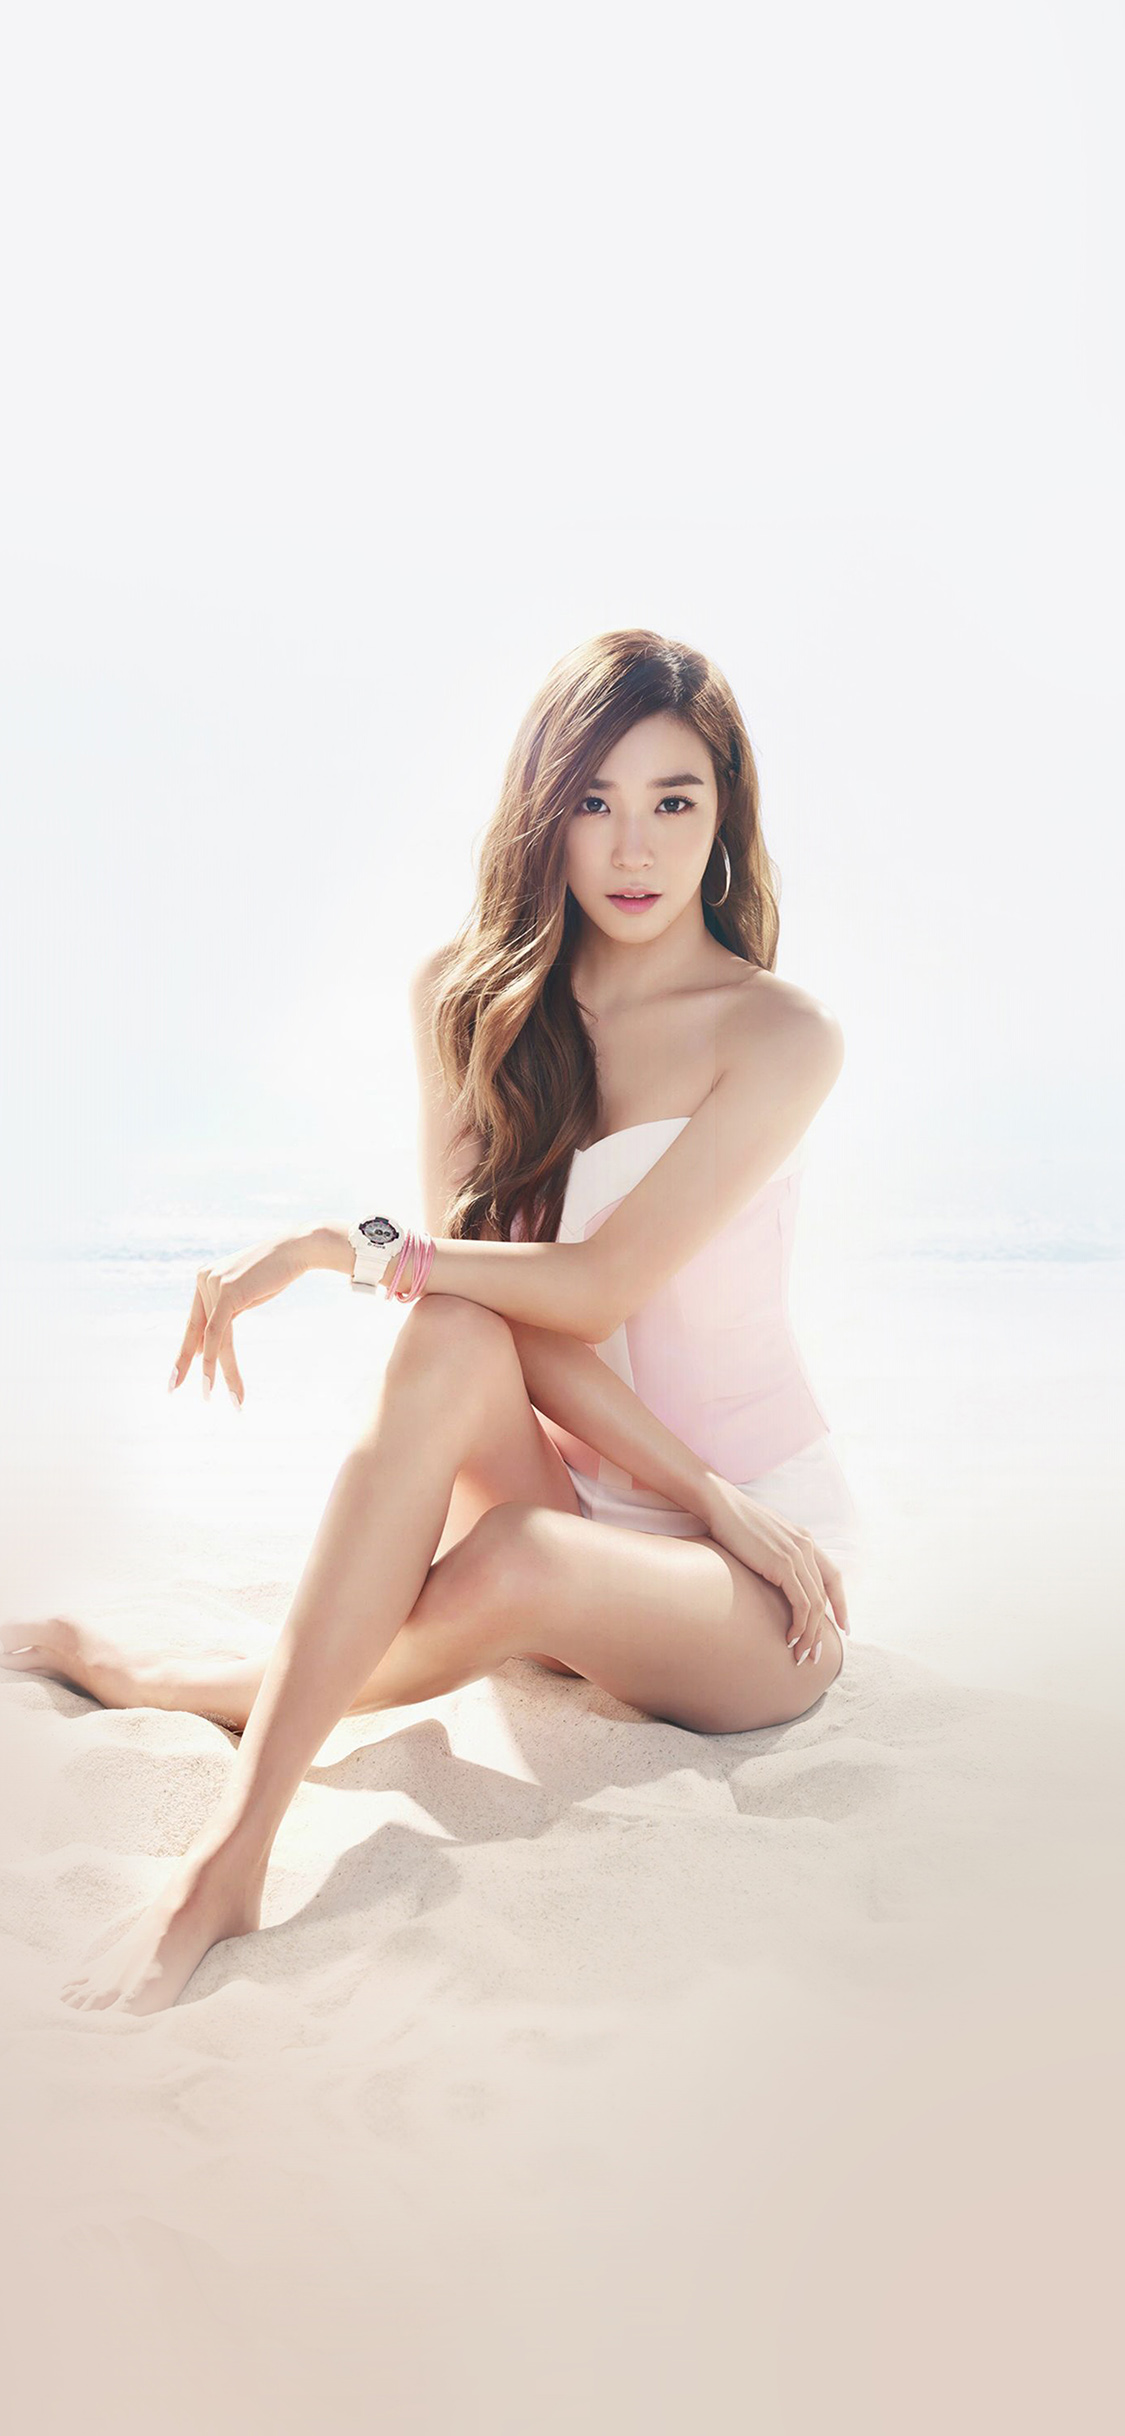 iPhoneXpapers.com-Apple-iPhone-wallpaper-hf05-kpop-snsd-tiffany-sexy-music-beach